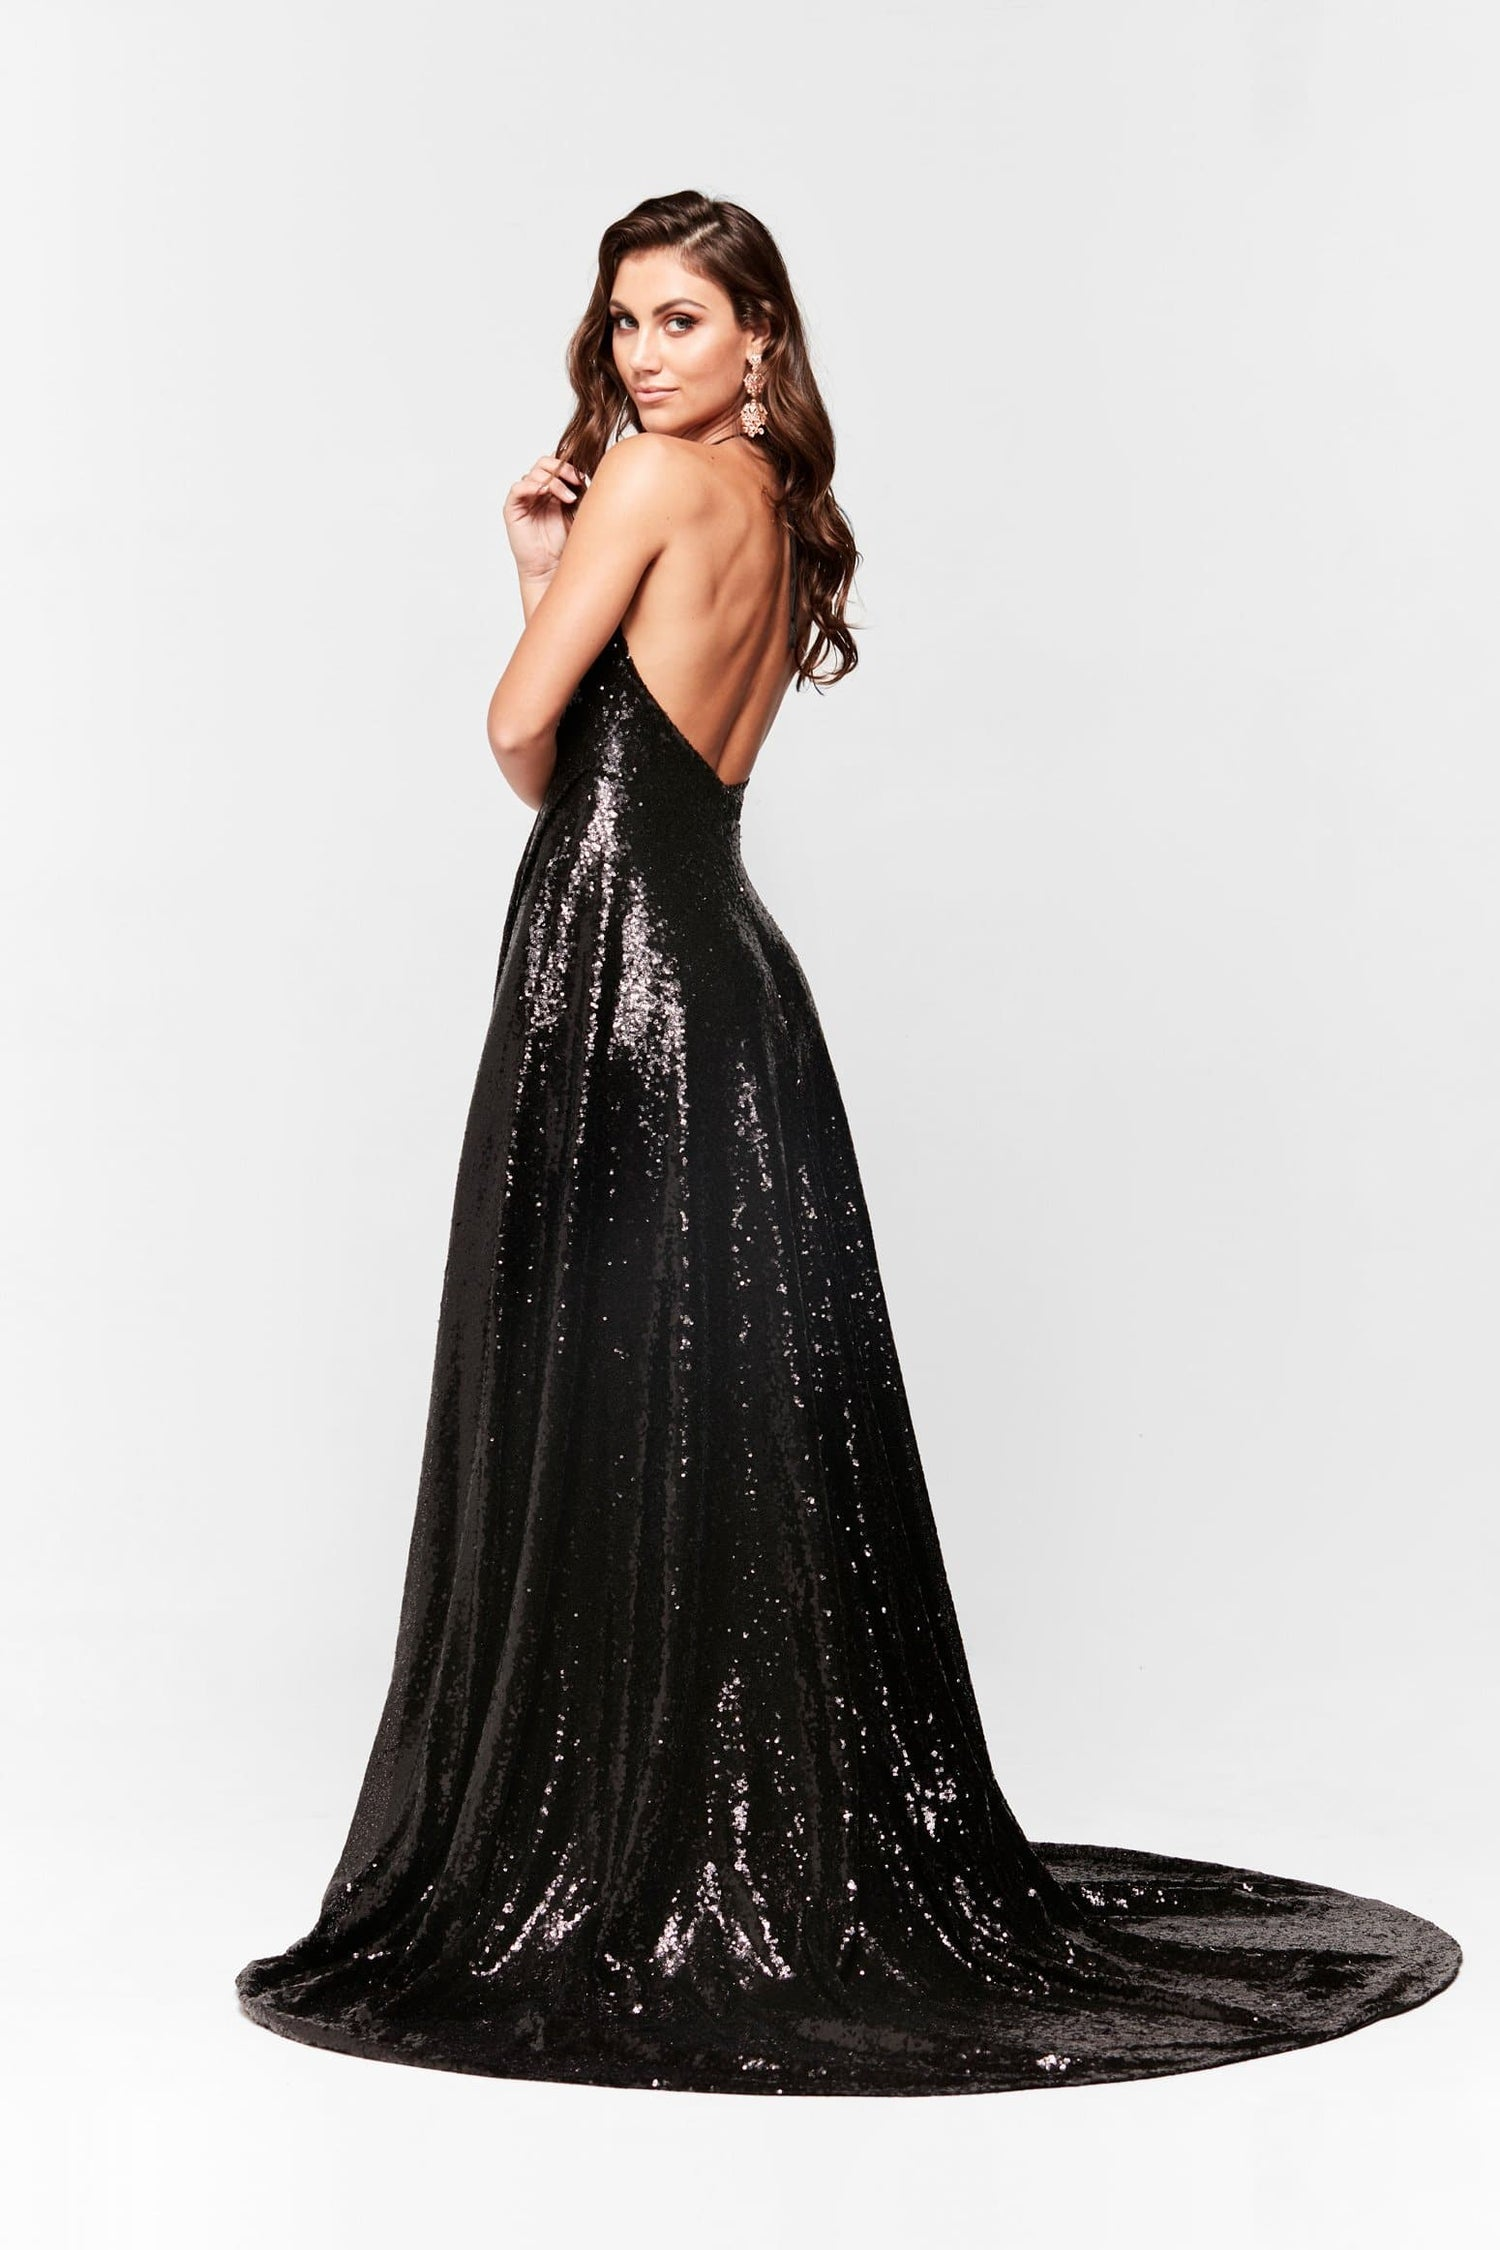 A&N Camilla - Black Sequin Gown with Plunge V Neck and Low Back